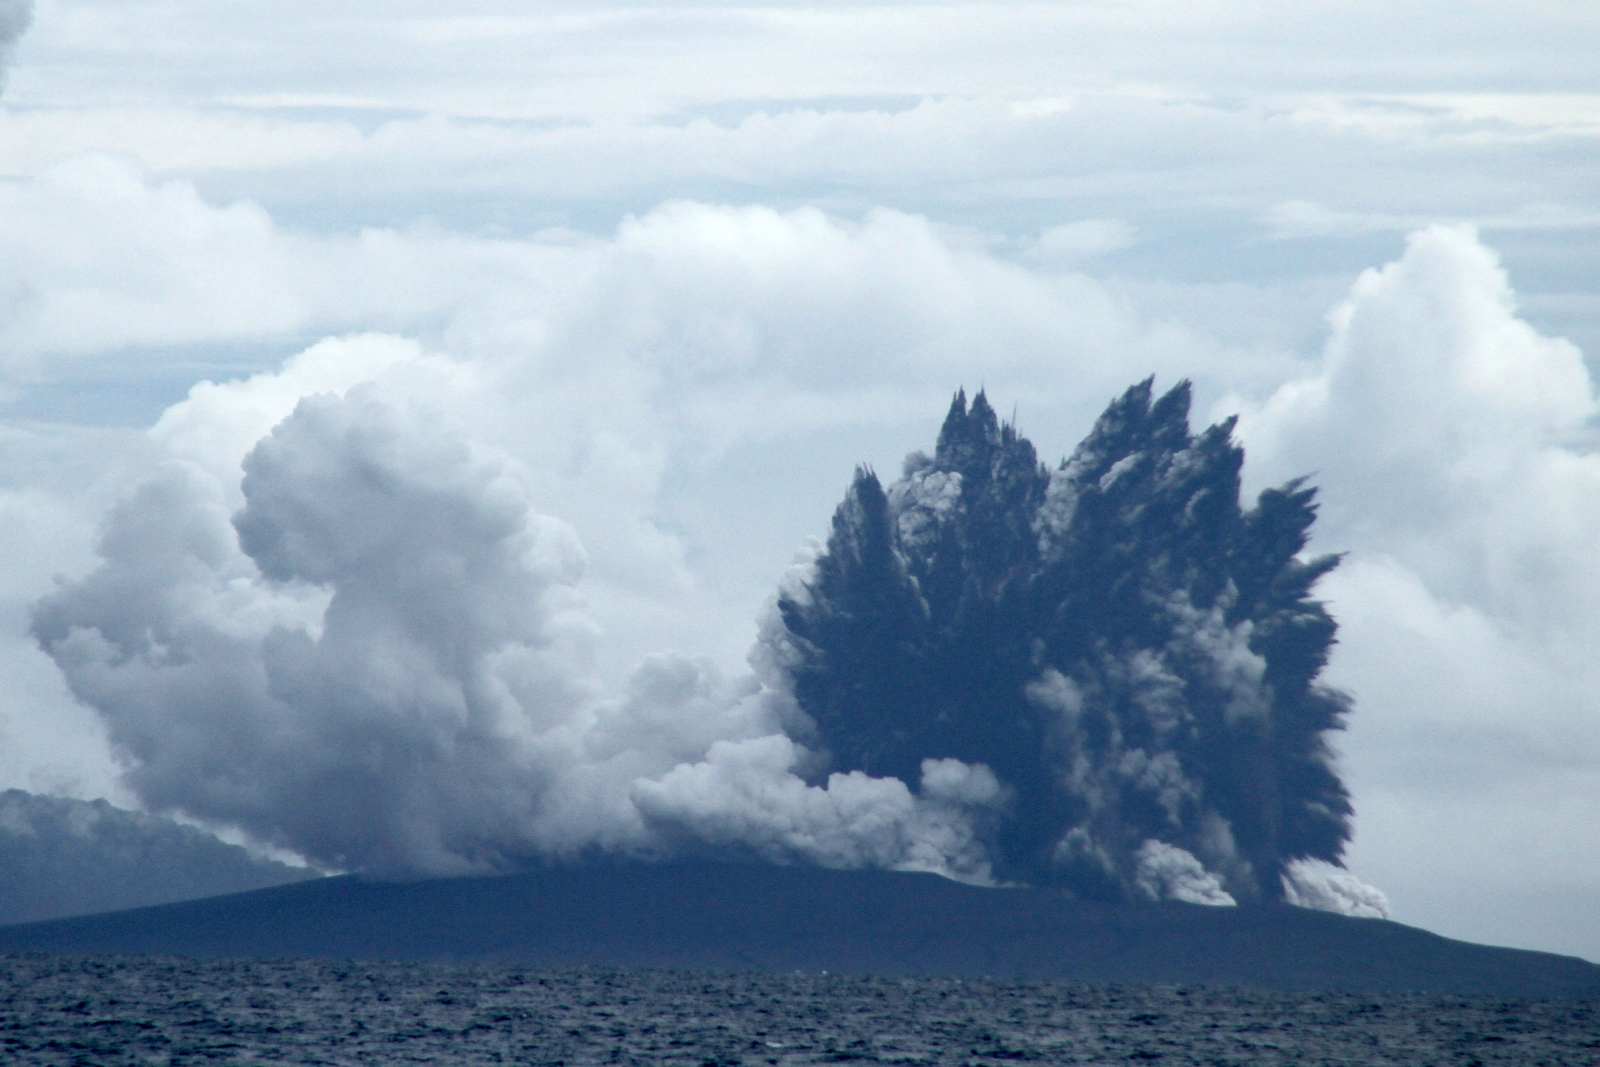 Anak Krakatoa Eruption